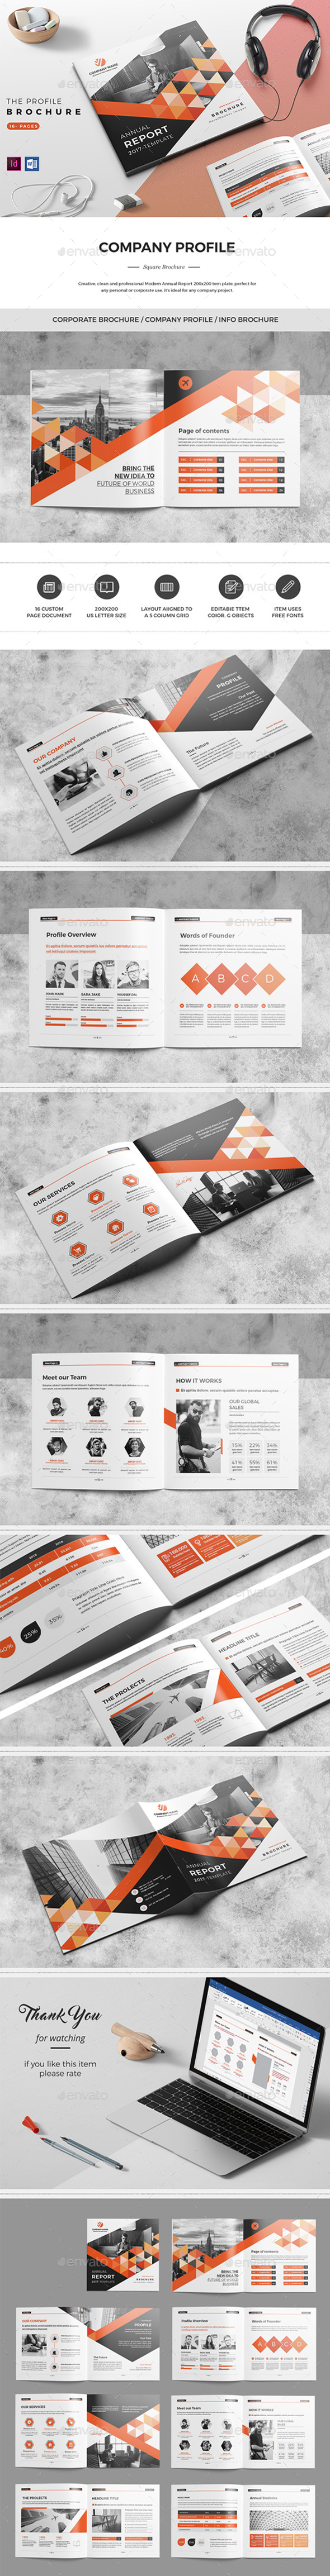 Square Brochure. 16 Pages - Corporate Brochures